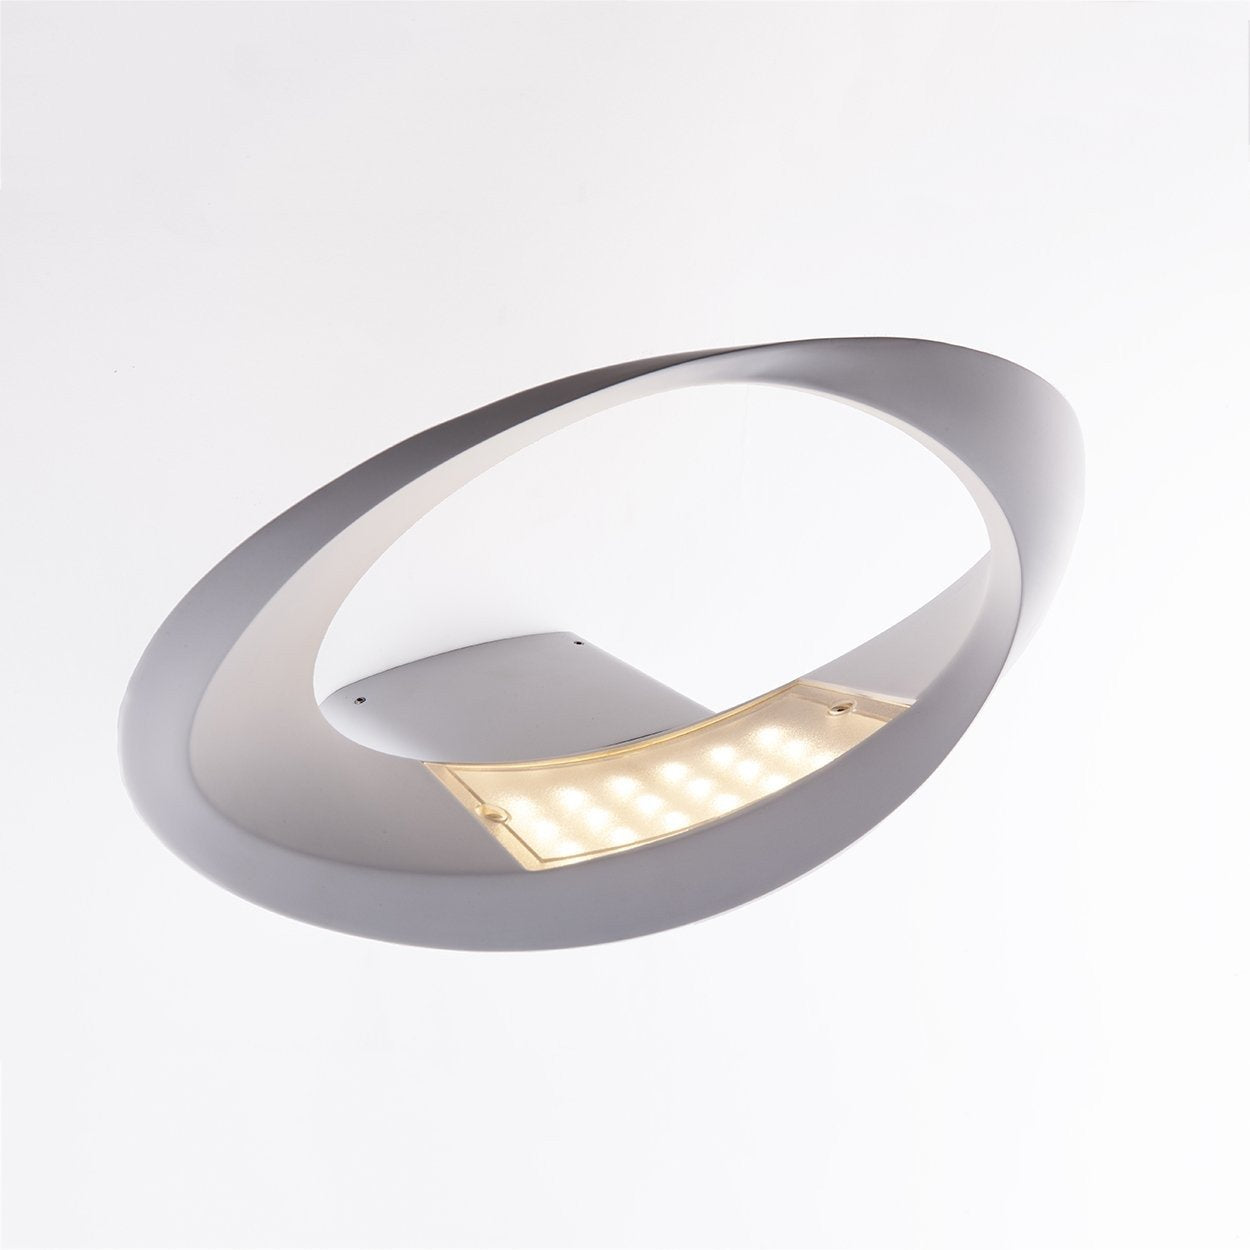 [LS862WLED] The Cham Wall Sconce SALE